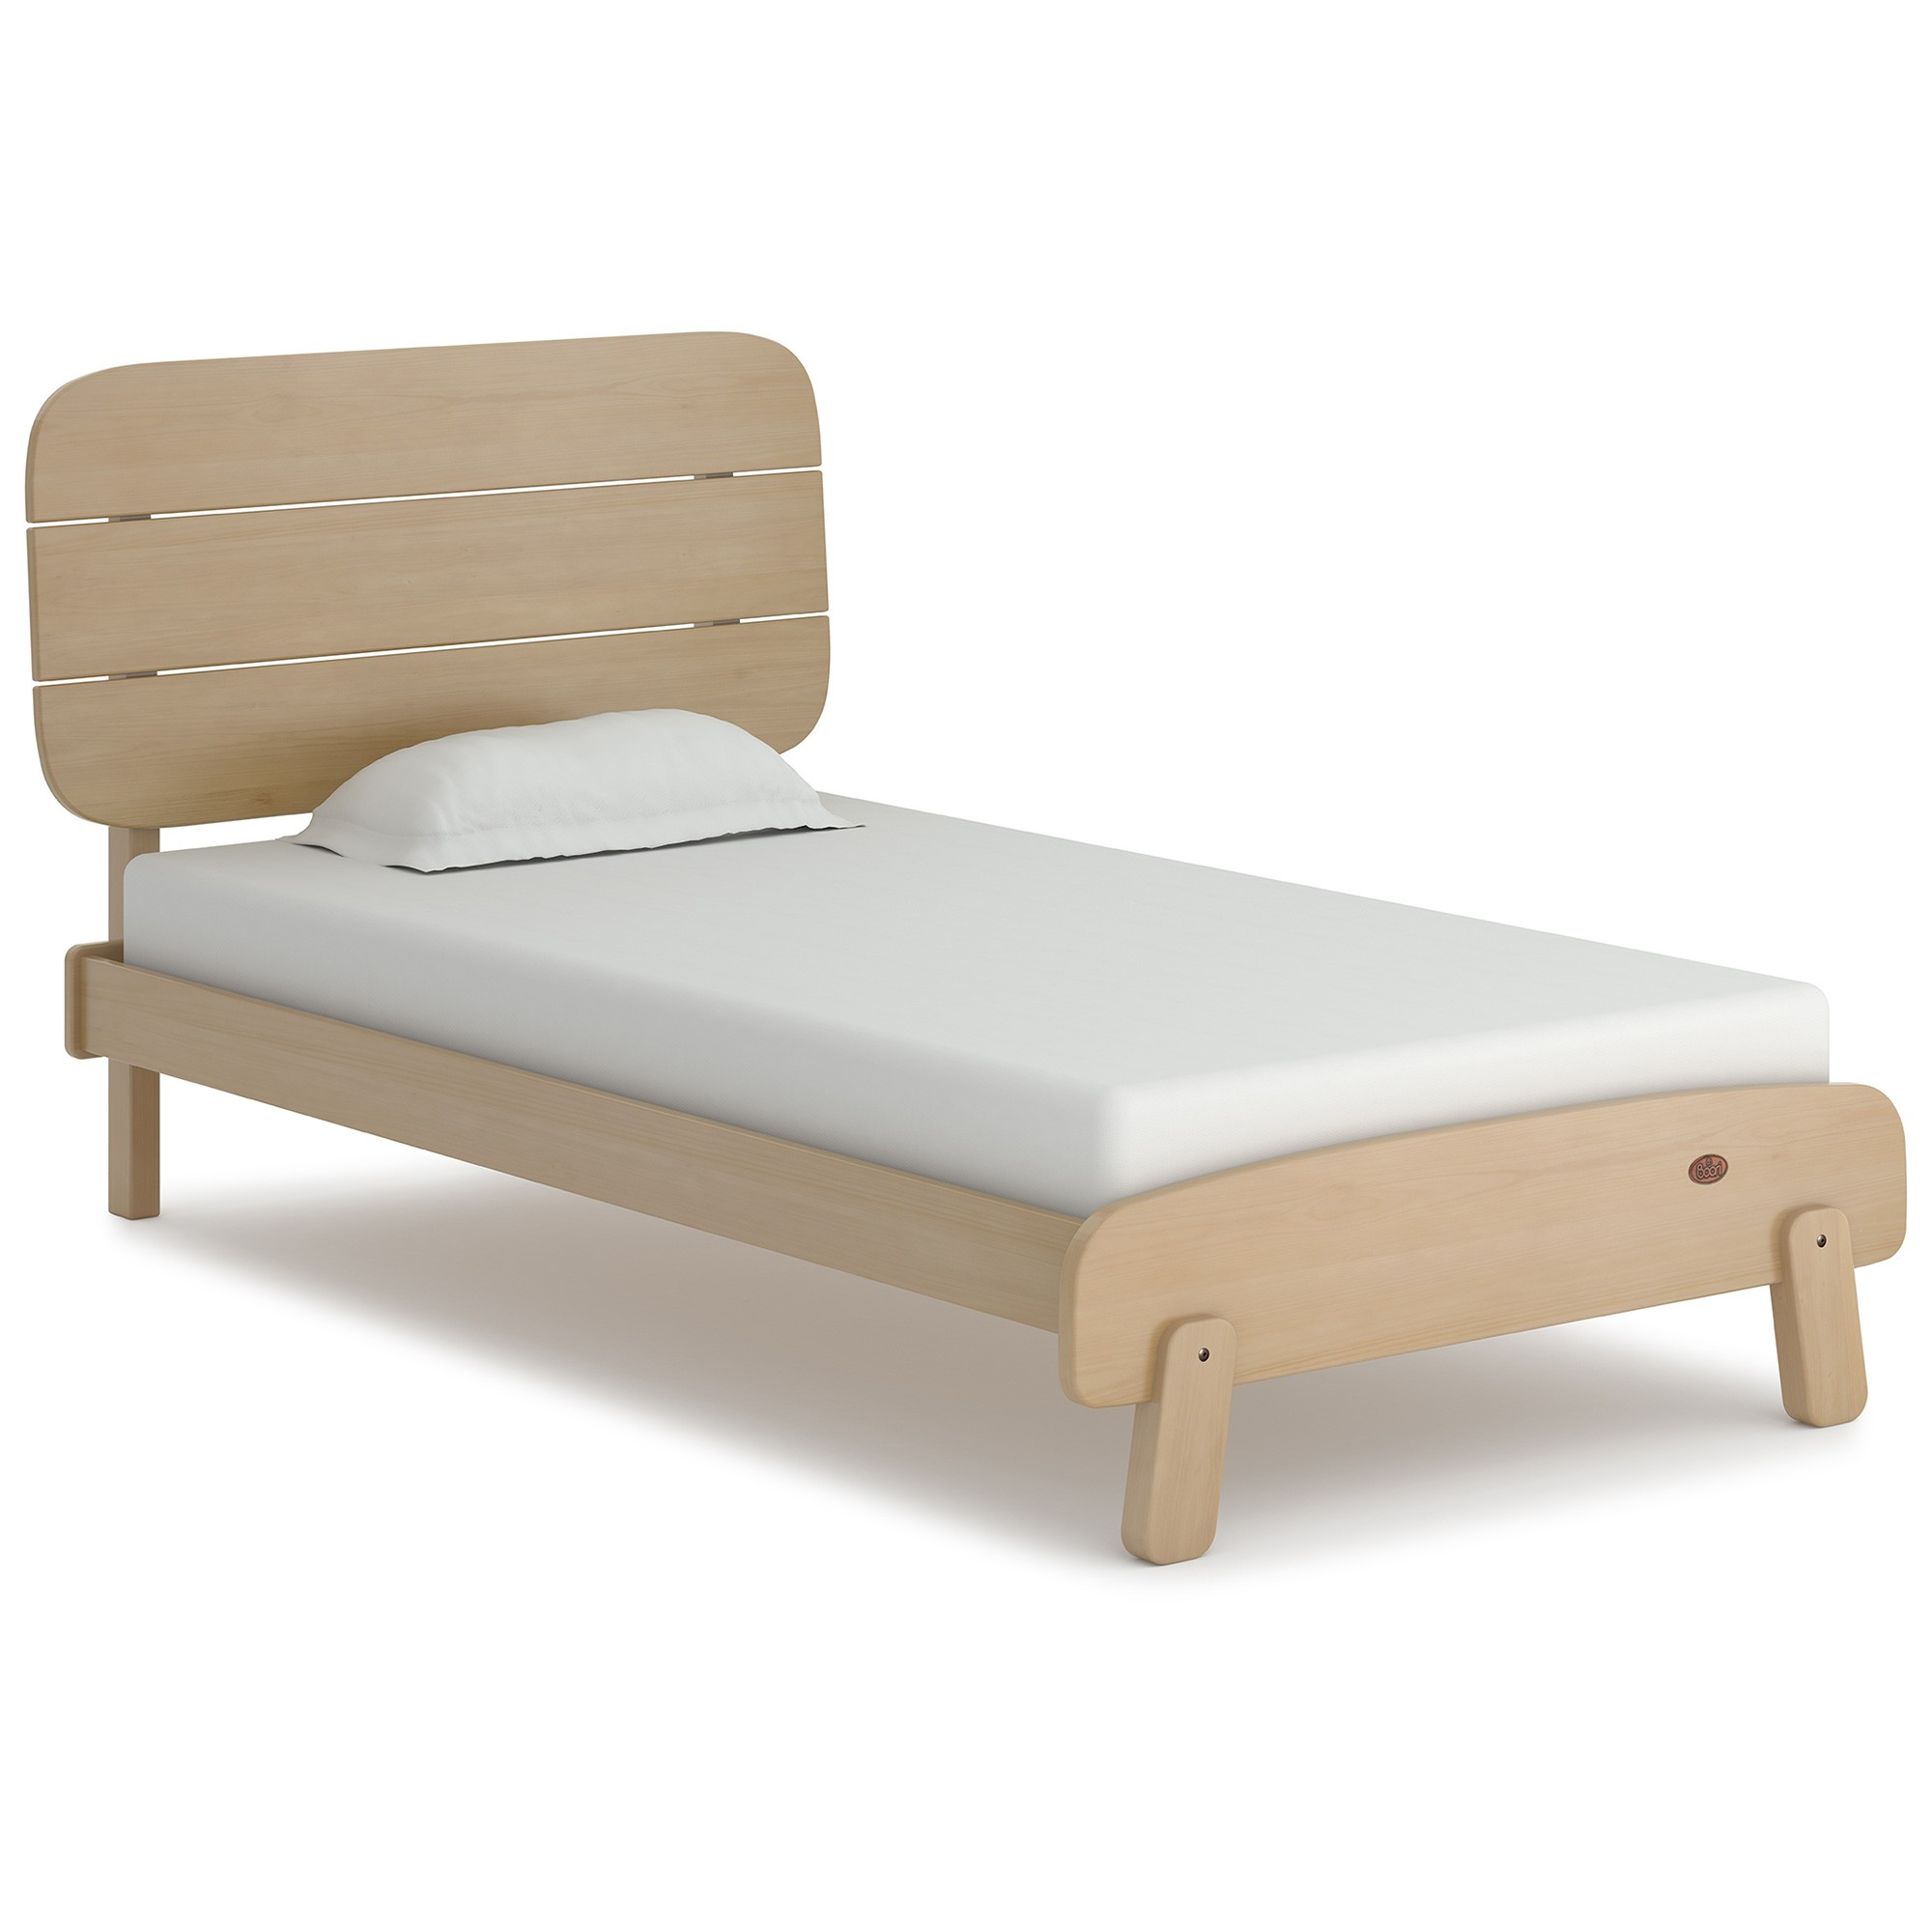 Boori Paddington Wooden Bed, King Single, Almond